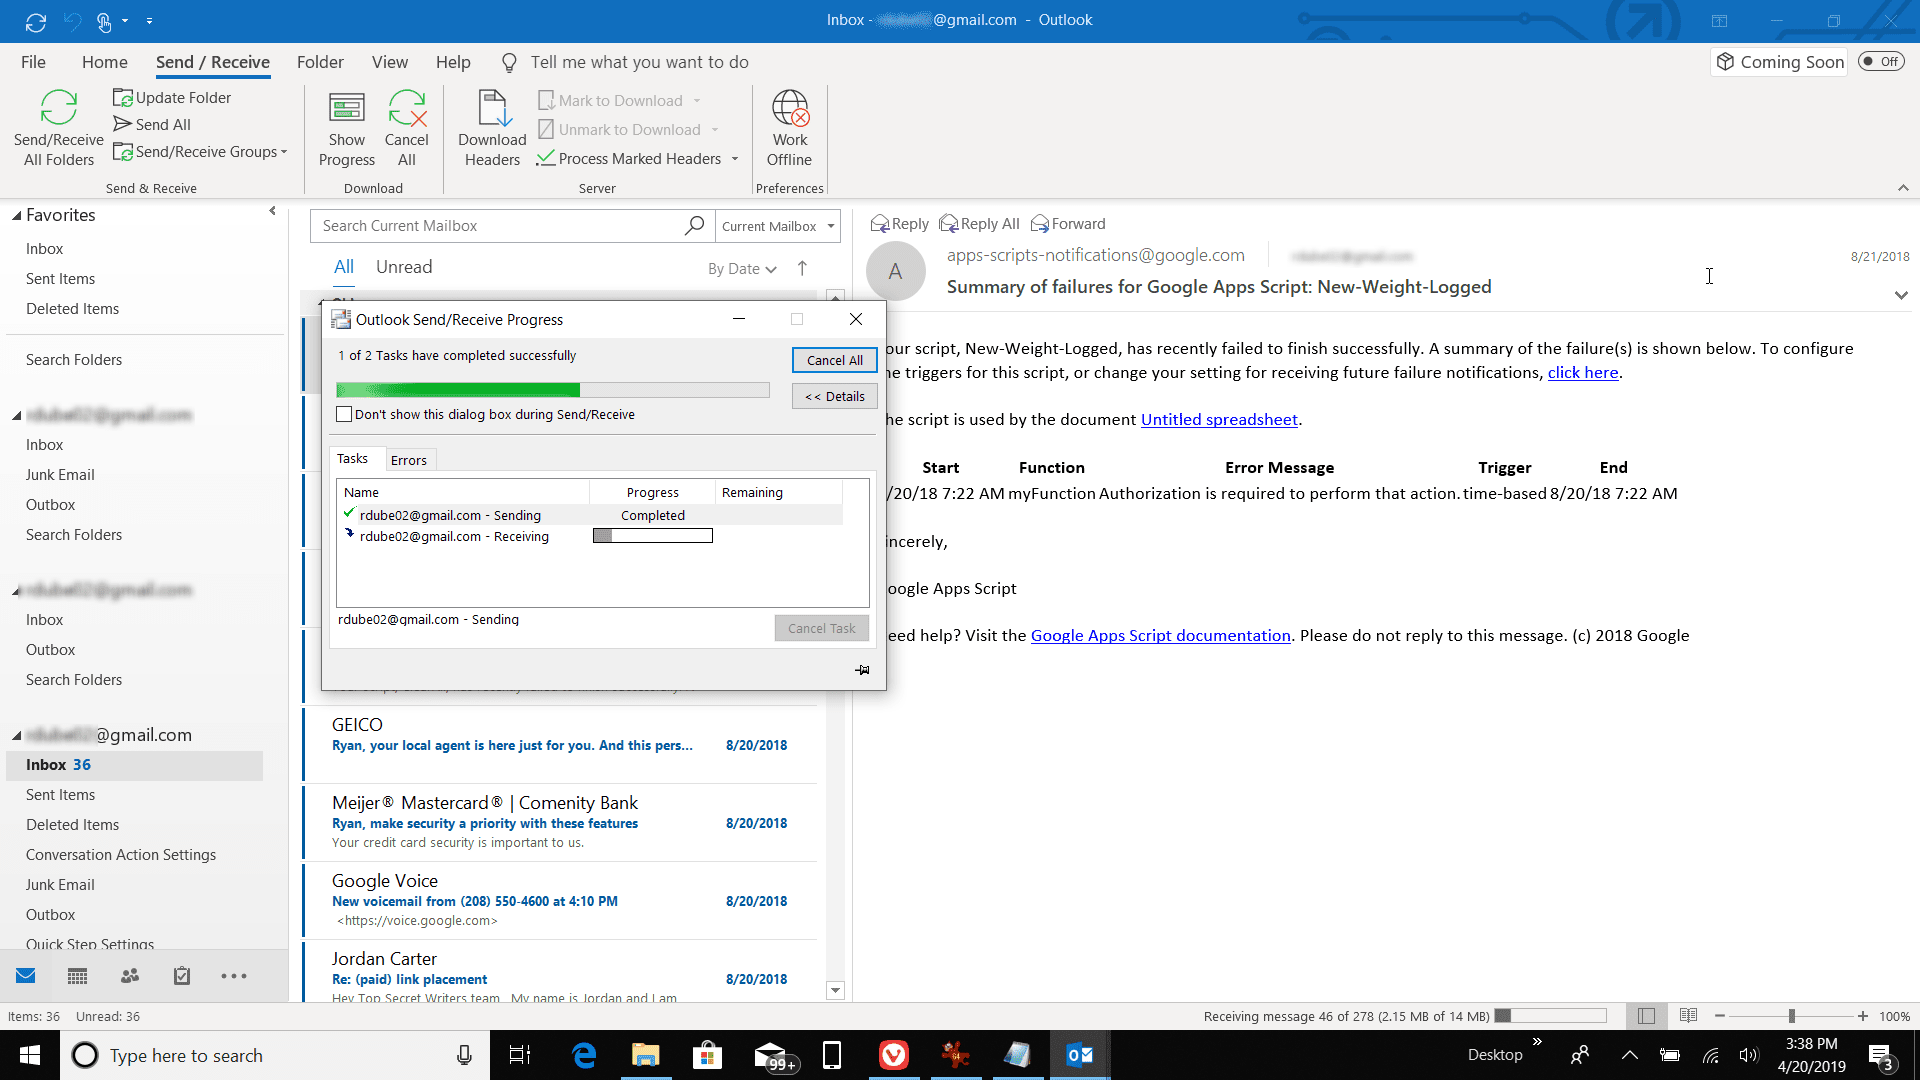 How to Access Gmail in Outlook Using a POP Server